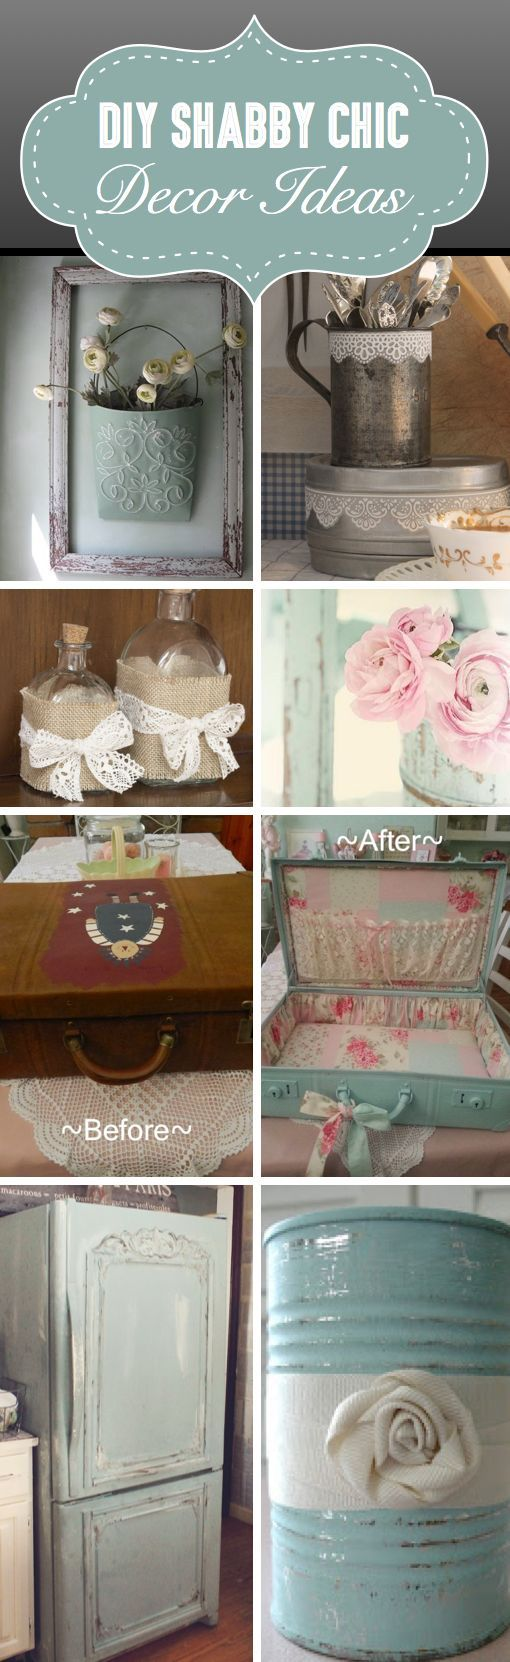 25 shabby chic style exterior design ideas decoration love - Craft Project Ideas 25 Diy Shabby Chic Decor Ideas For Women Who Love The Retro Style The Best Of Shabby Chic In